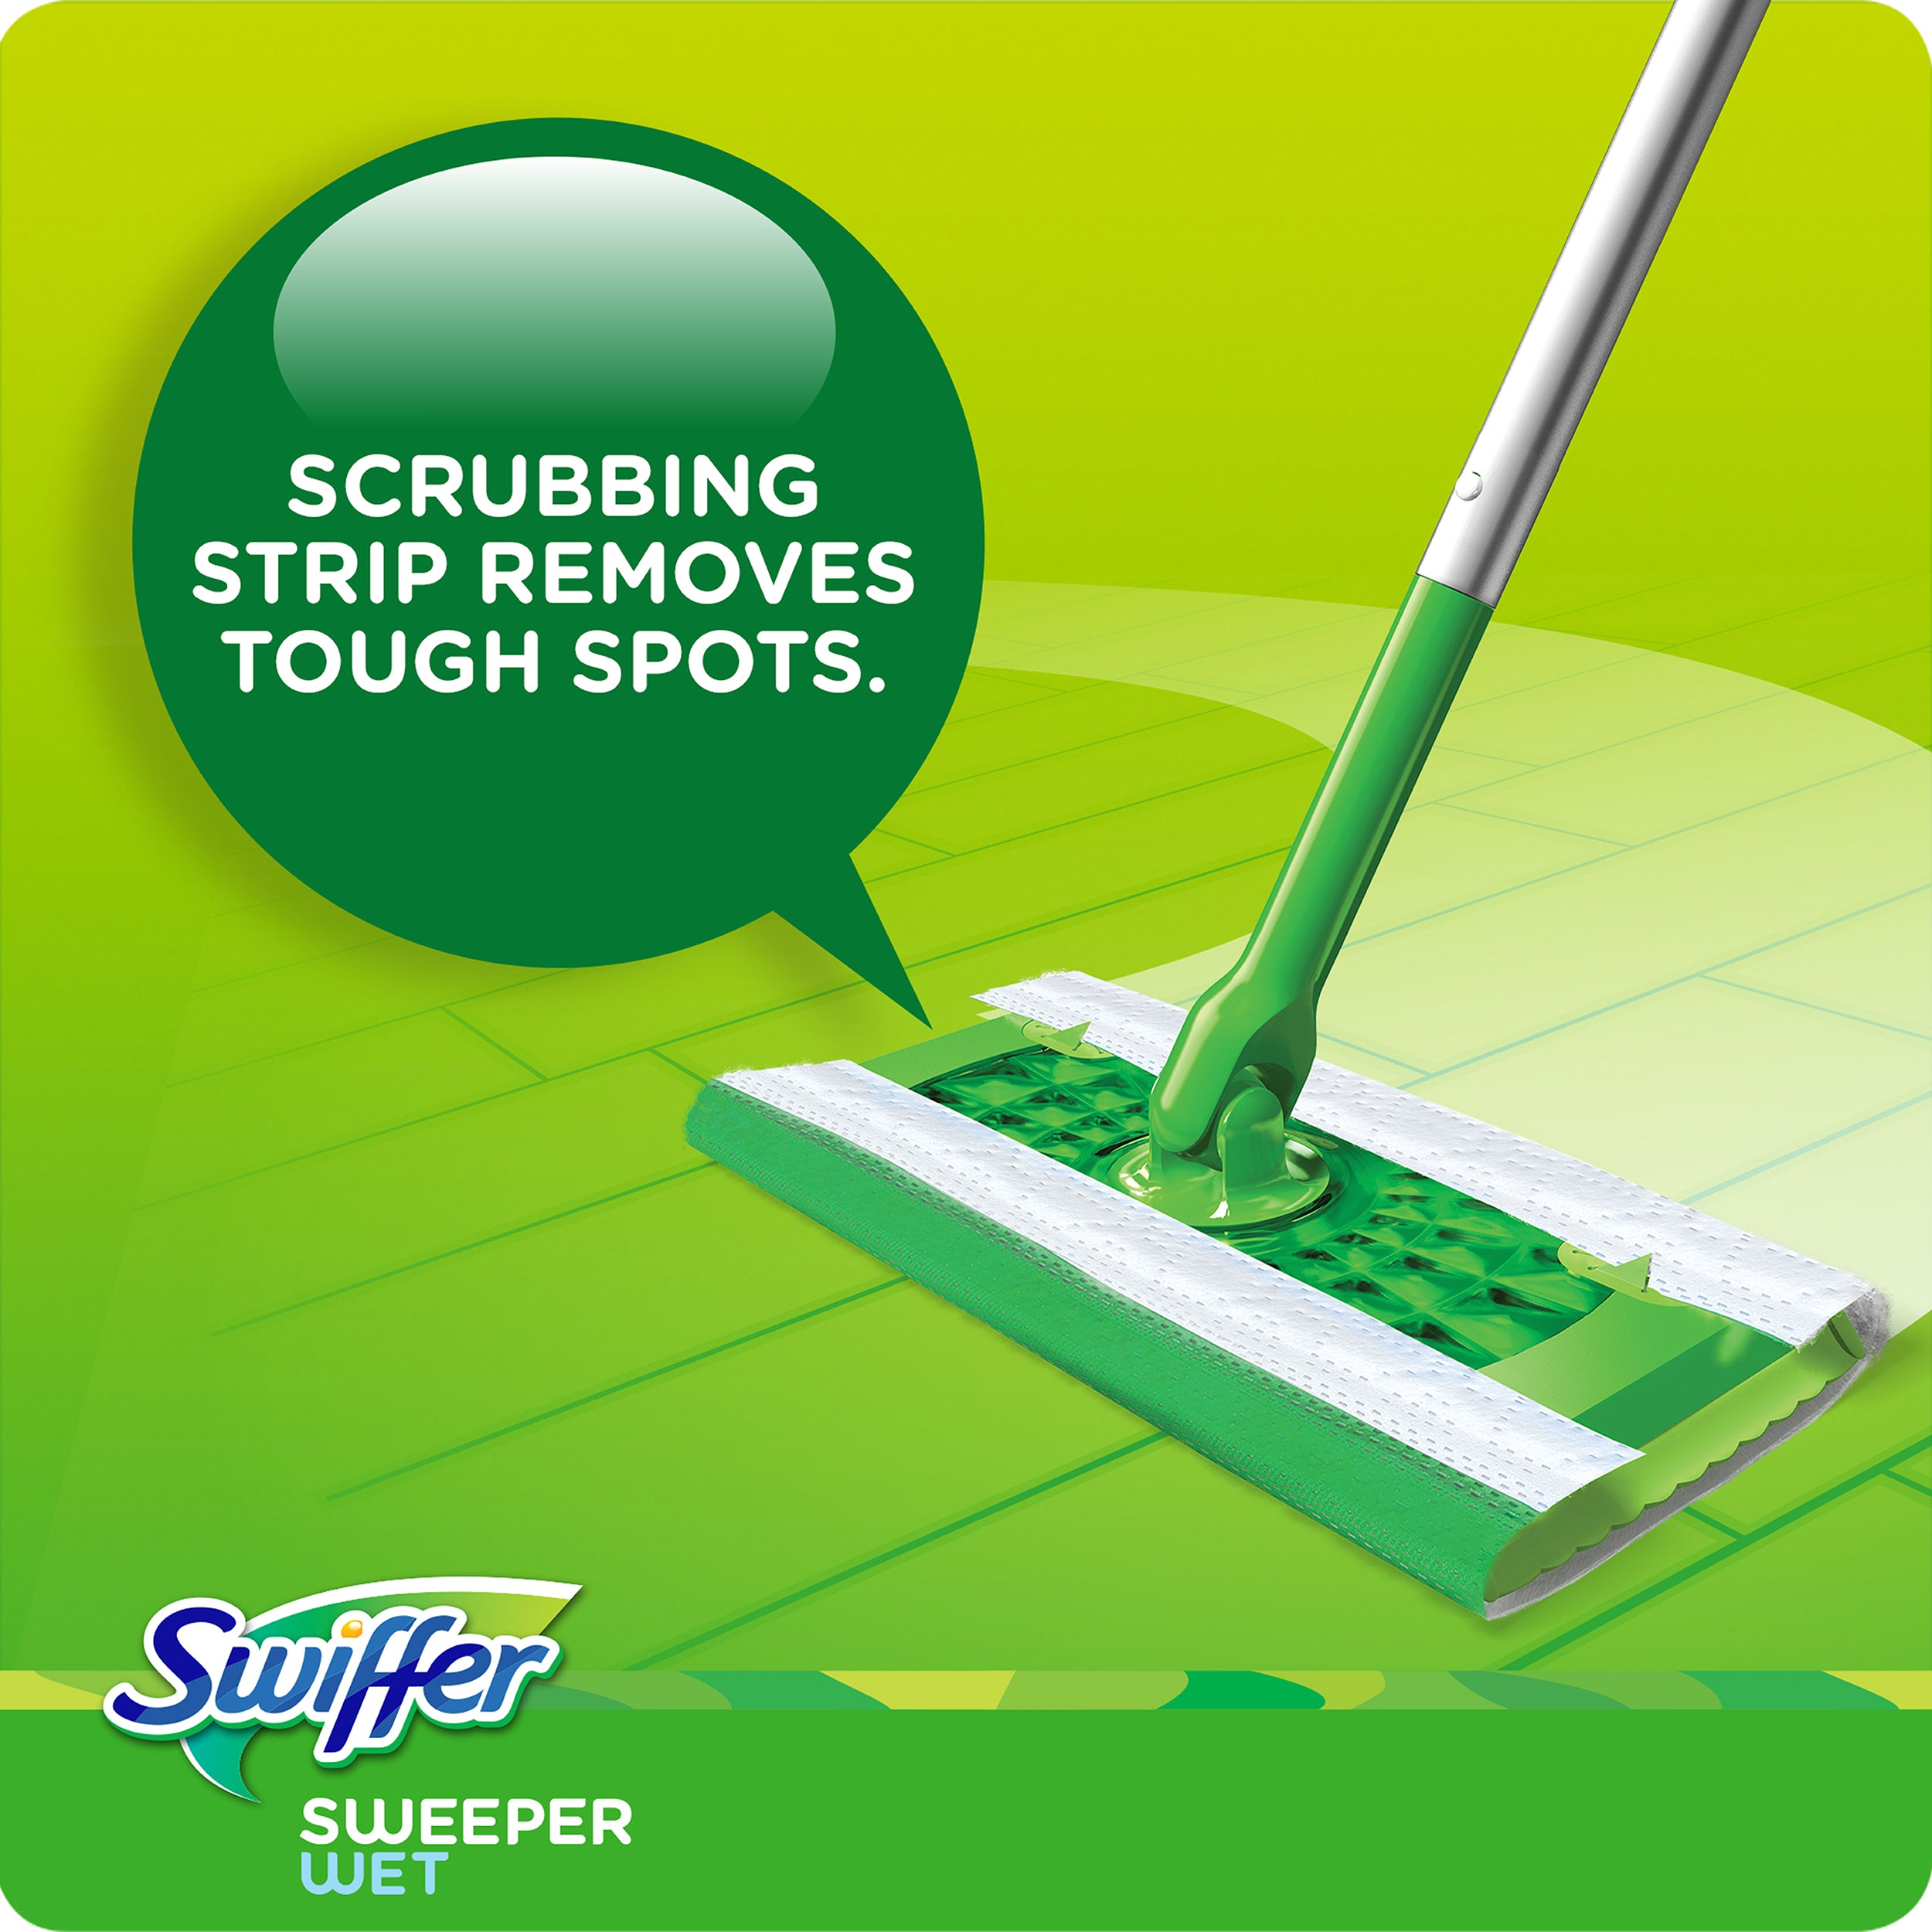 Swiffer Sweeper Wet Pad Refills, Lavender Scent, 24 Ct - FLJ CORPORATIONS